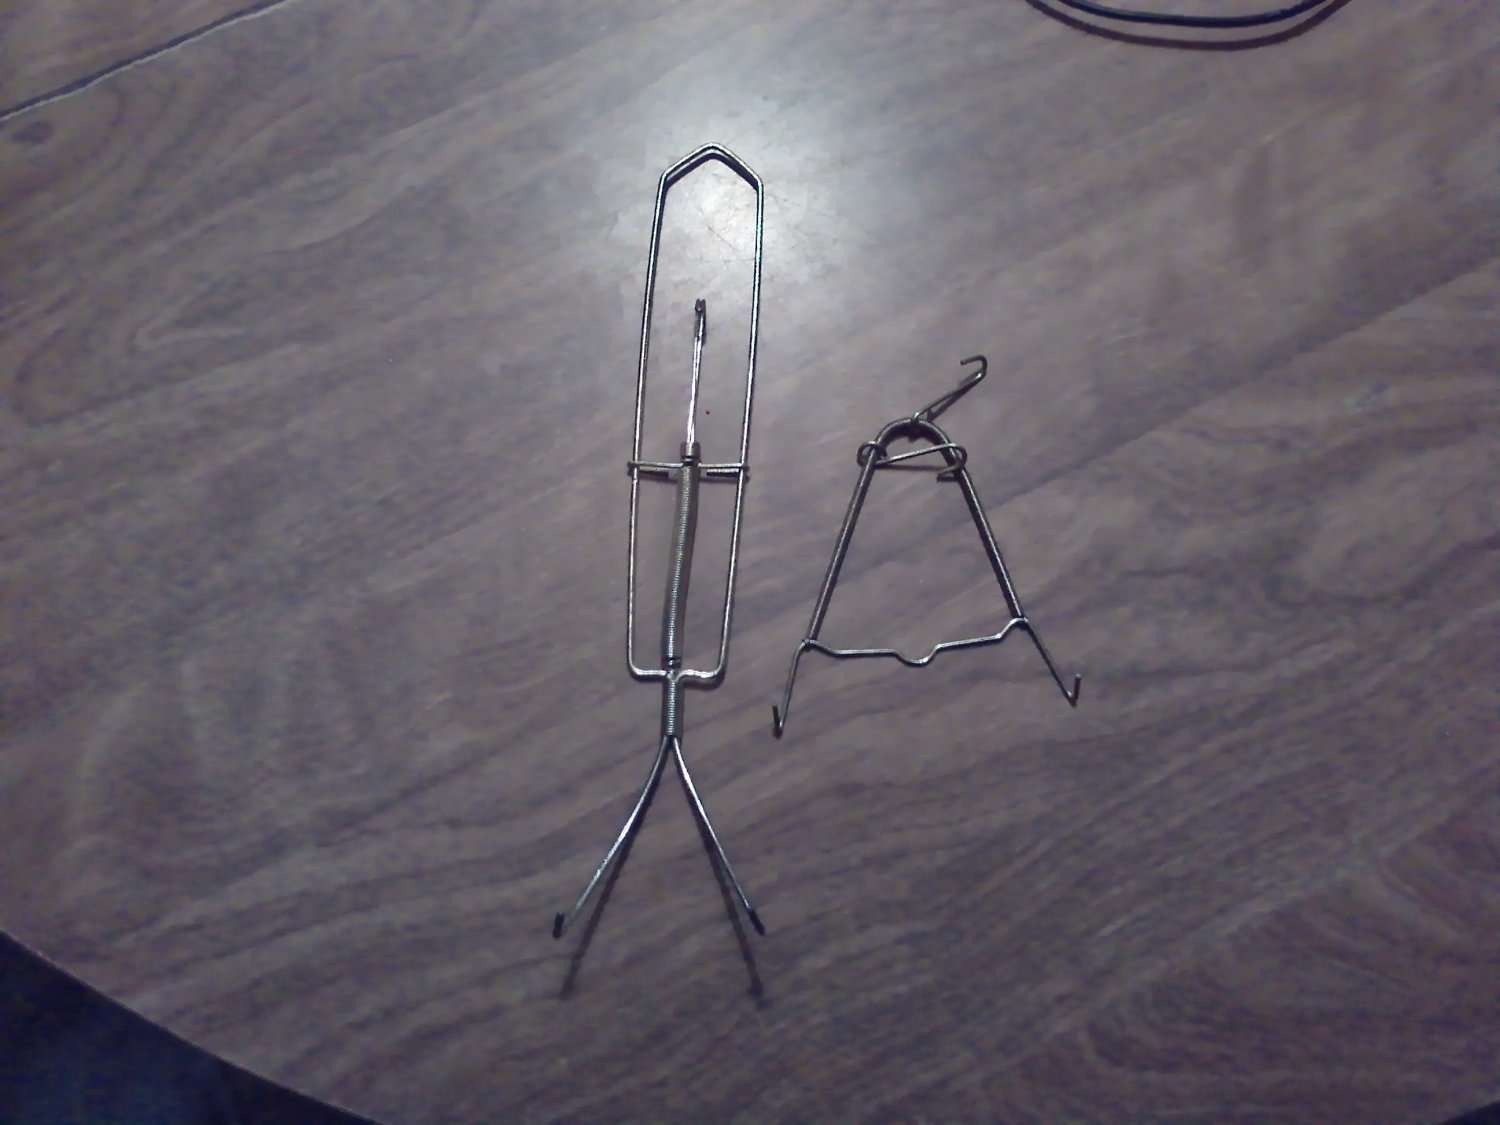 & Two Metal Plate Holders / Hangers (CMB5)